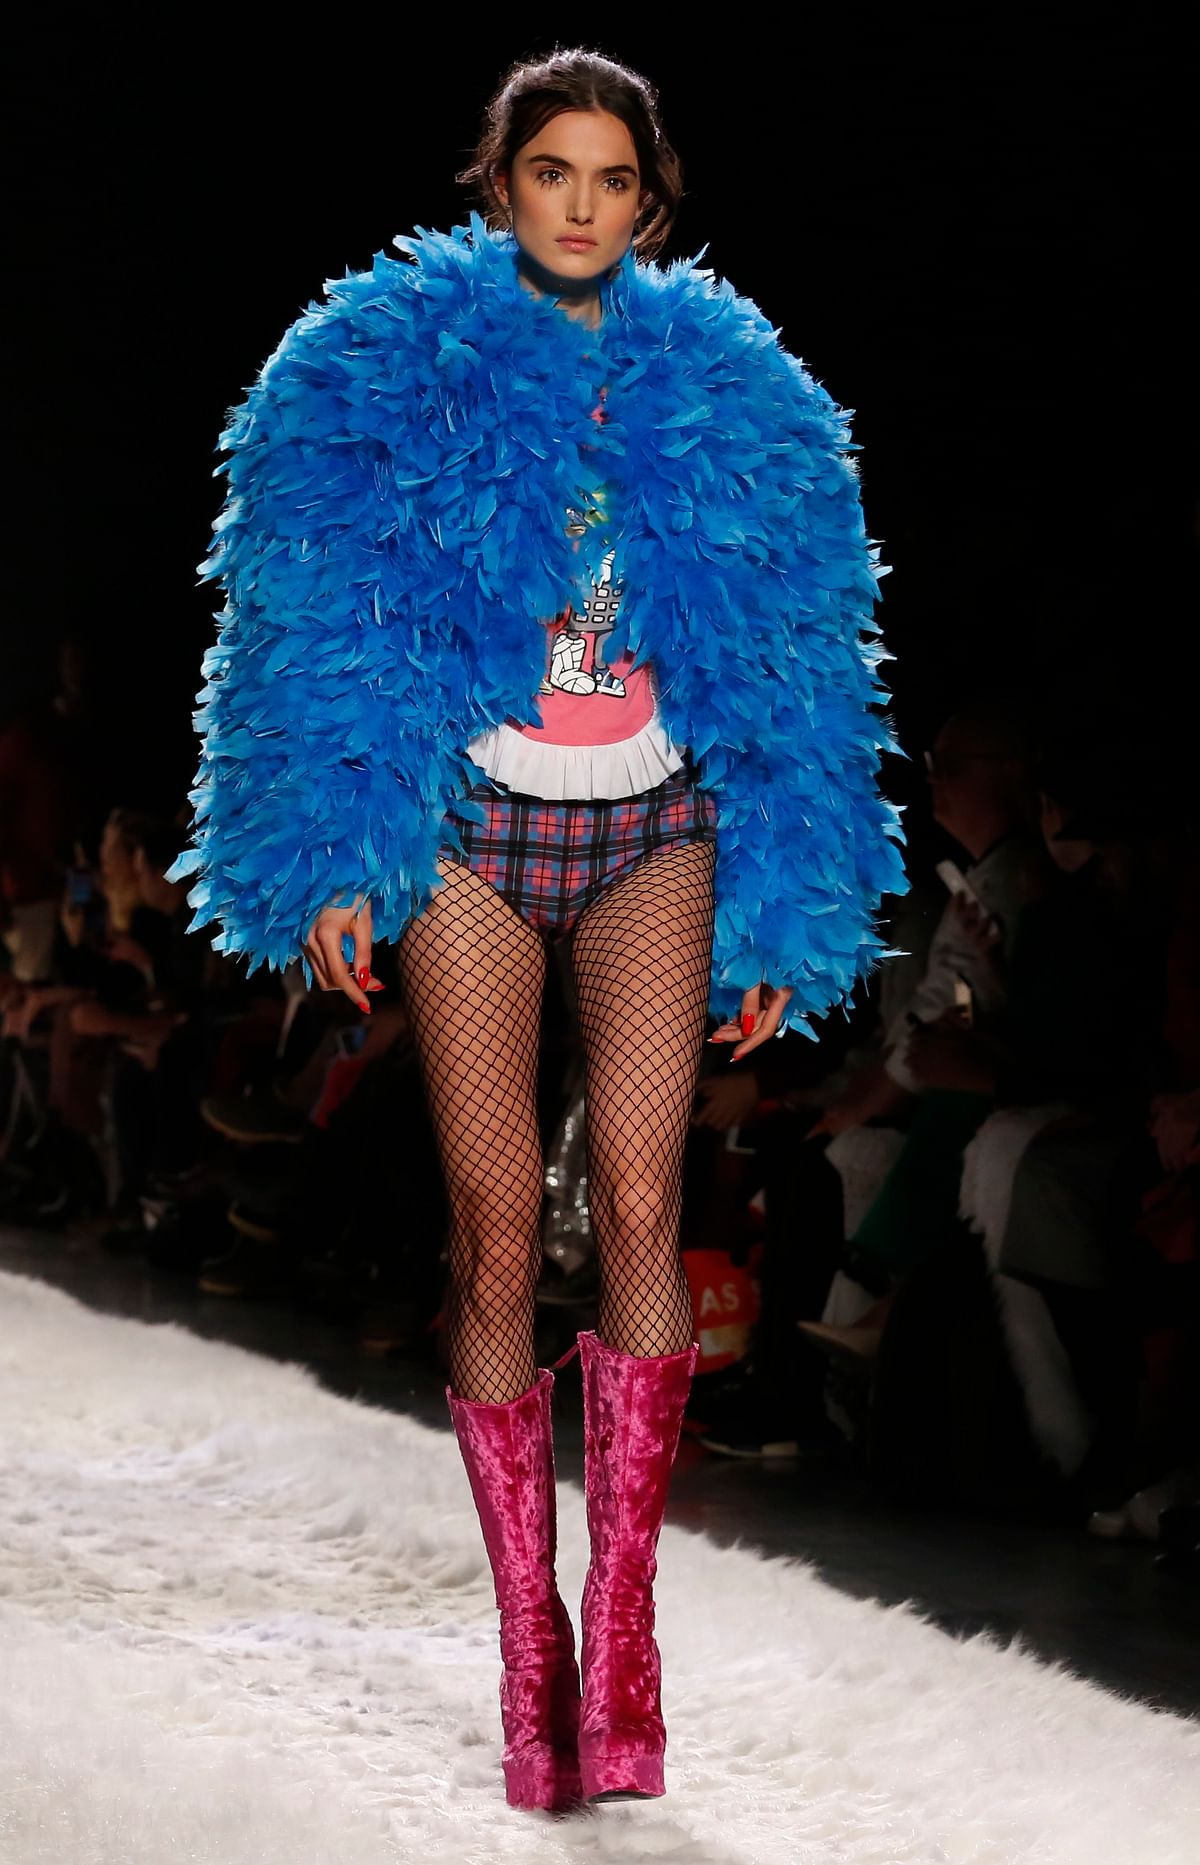 The fashion collection from Jeremy Scott is modeled during Fashion Week, Friday, 10 February 2017, in New York. (AP Photo/Bebeto Matthews)